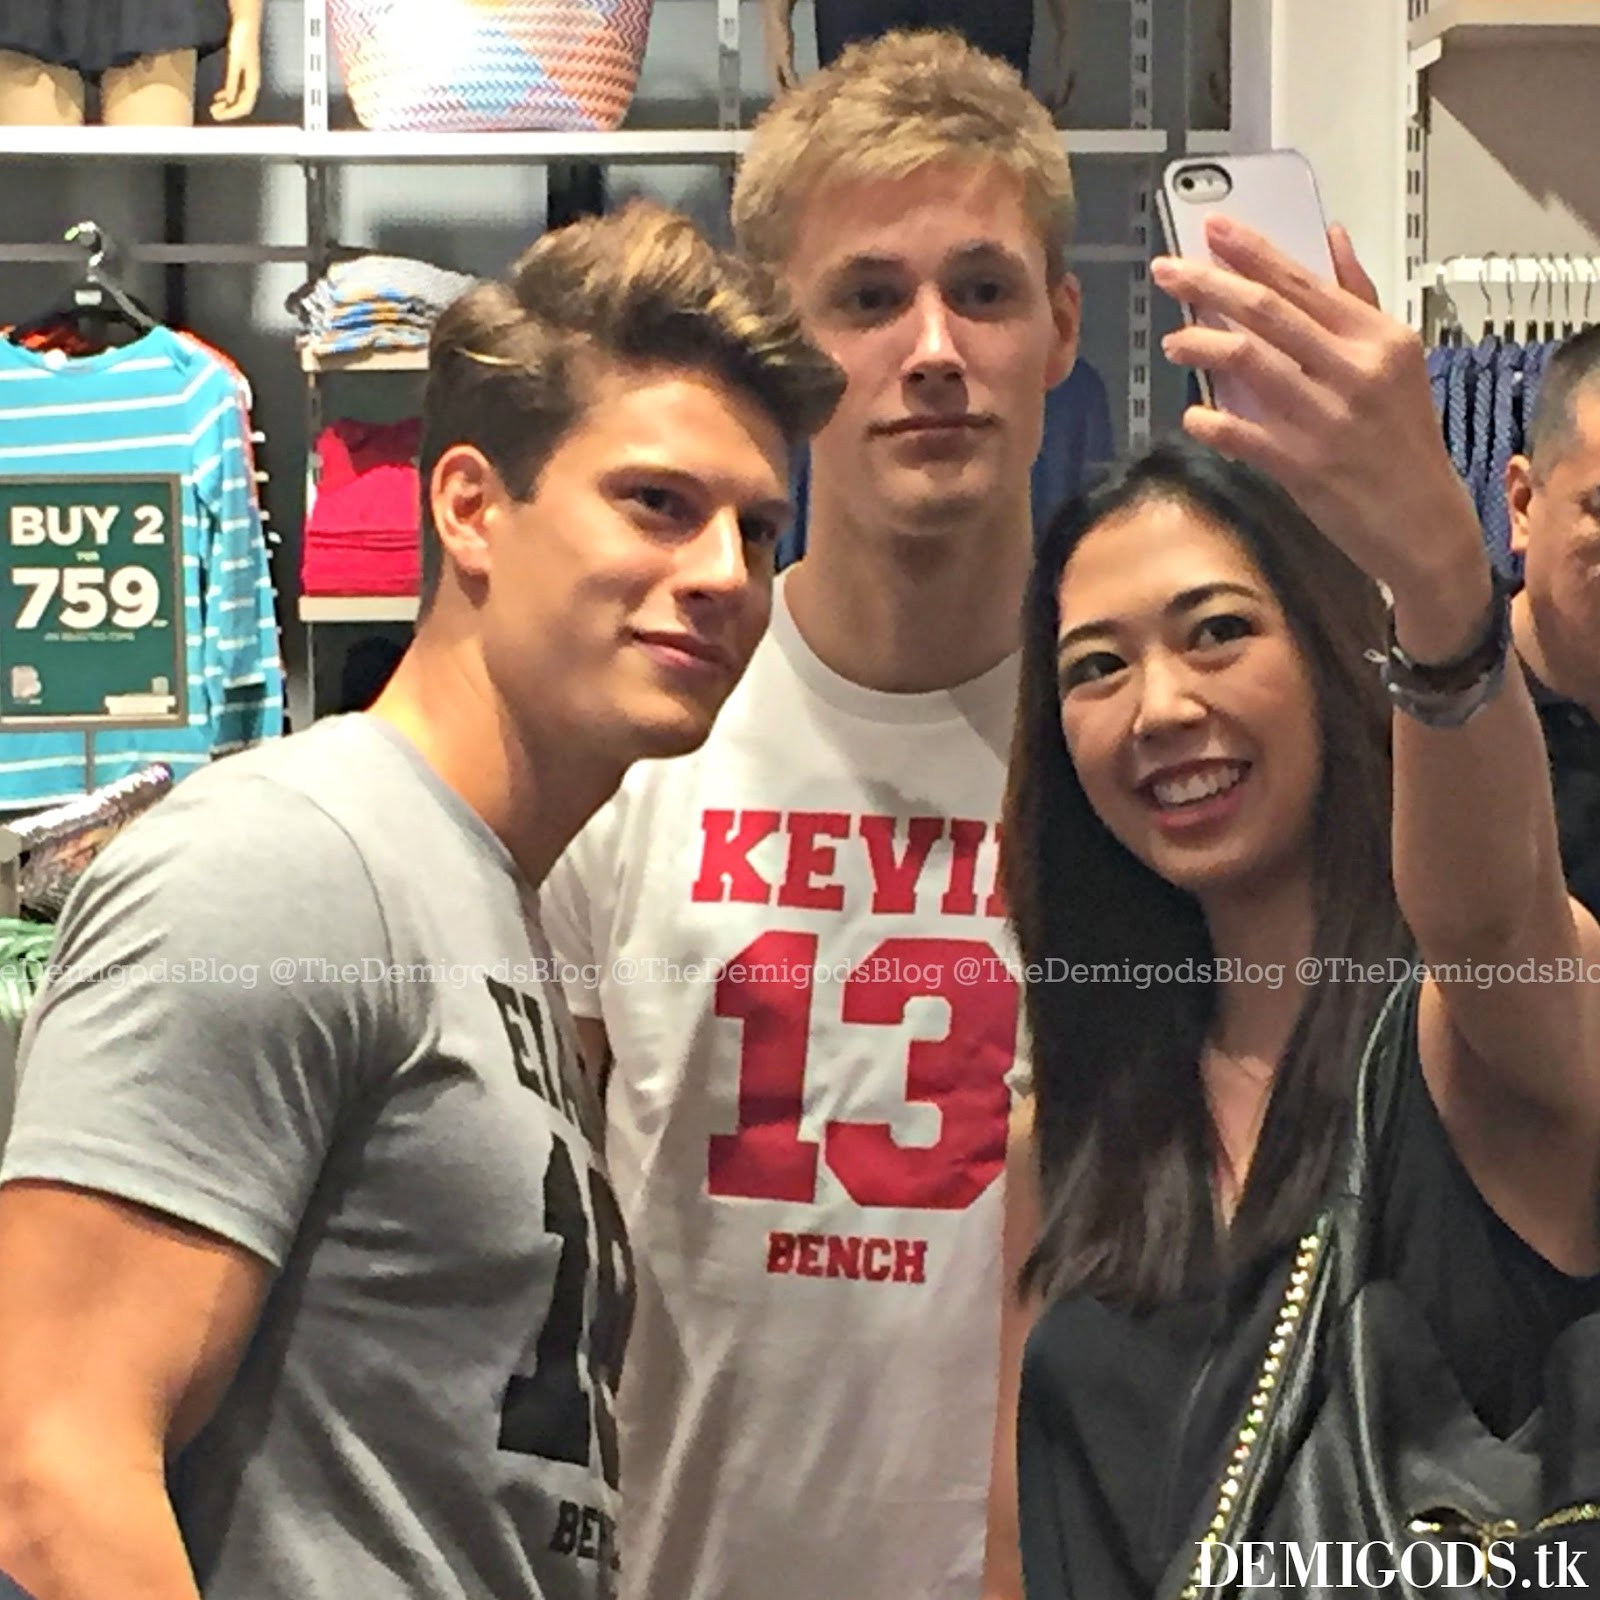 Demigods the bench meet and greet with river viiperi eian scully meet and greet was that it didnt require the fans to buy a specific amount of bench items to meet them you just have to go there and take pictures kristyandbryce Images